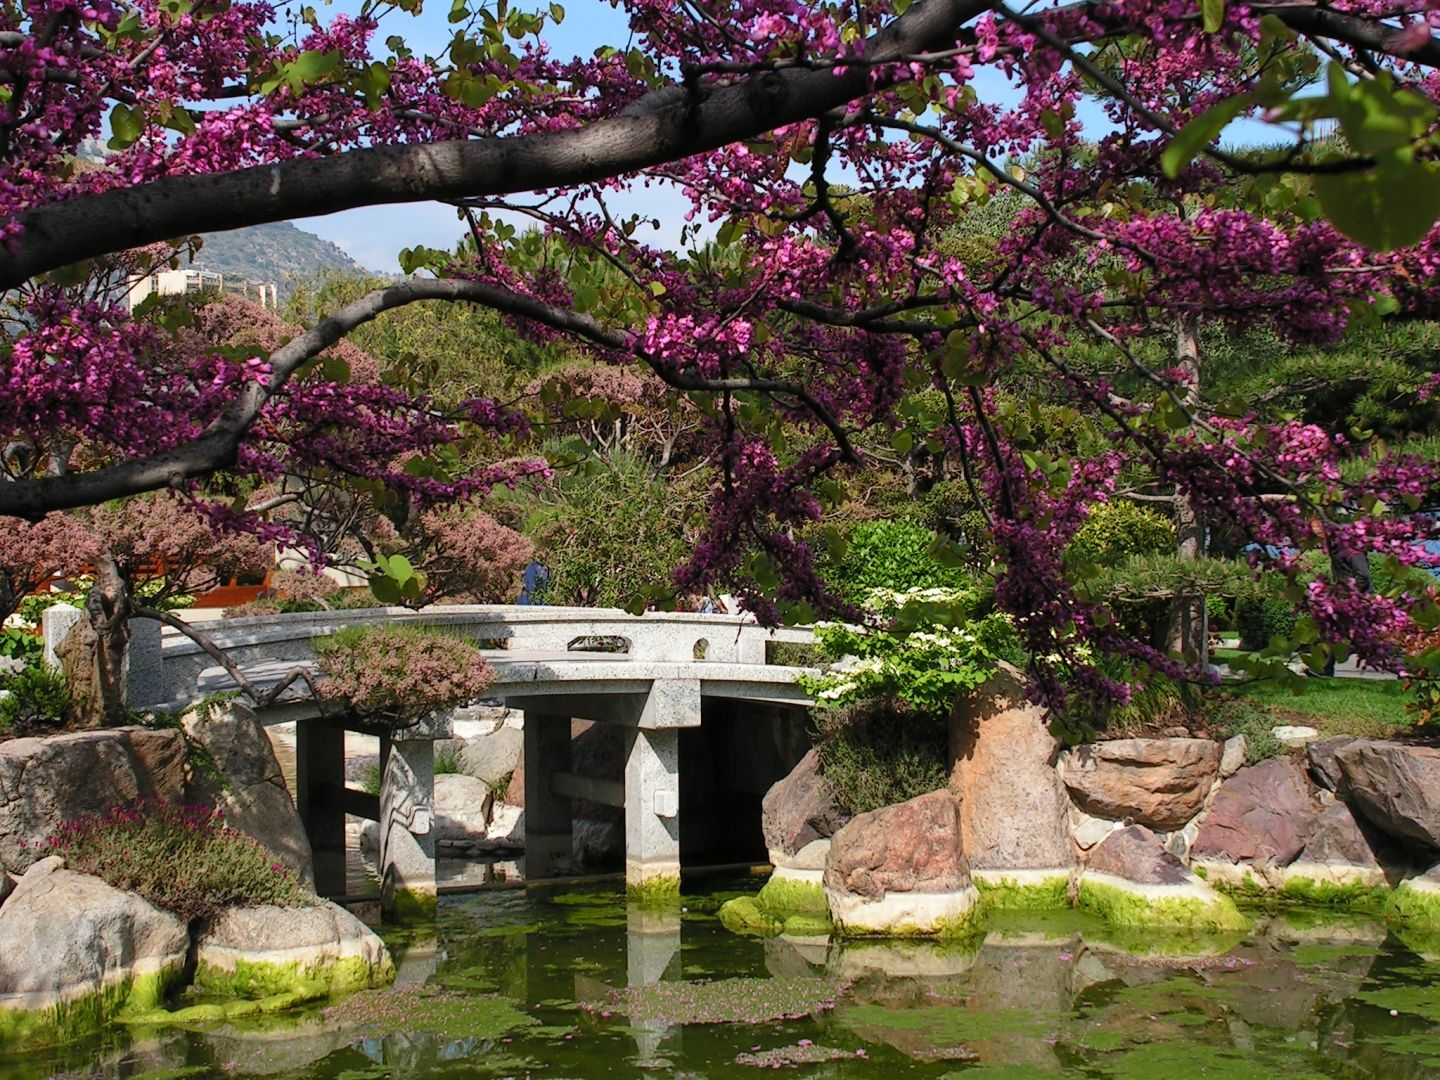 japanese gardens are one of the most beautiful gardens in the world